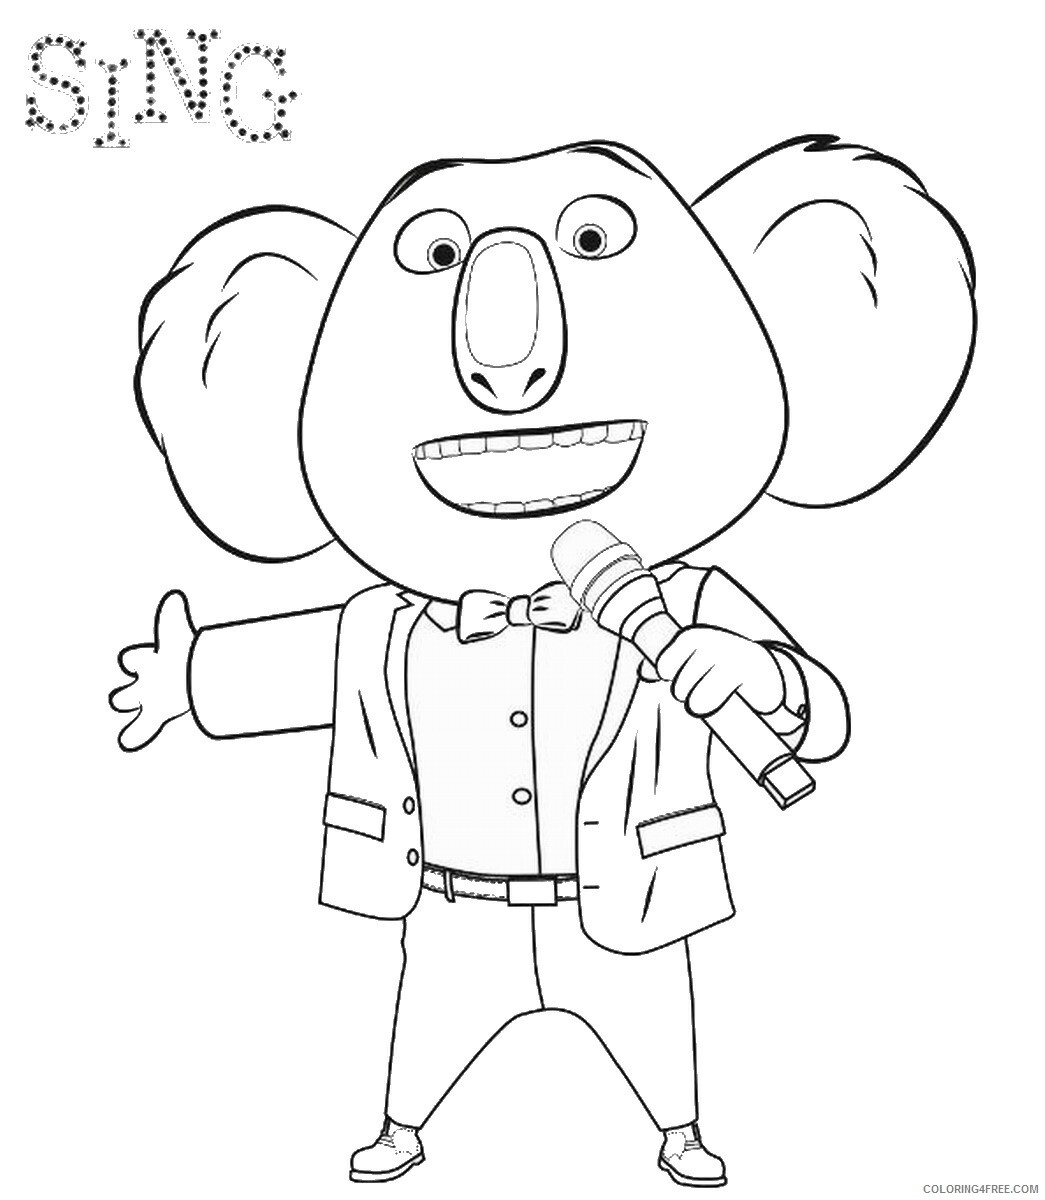 Sing Coloring Pages TV Film sing2 Printable 2020 07604 Coloring4free